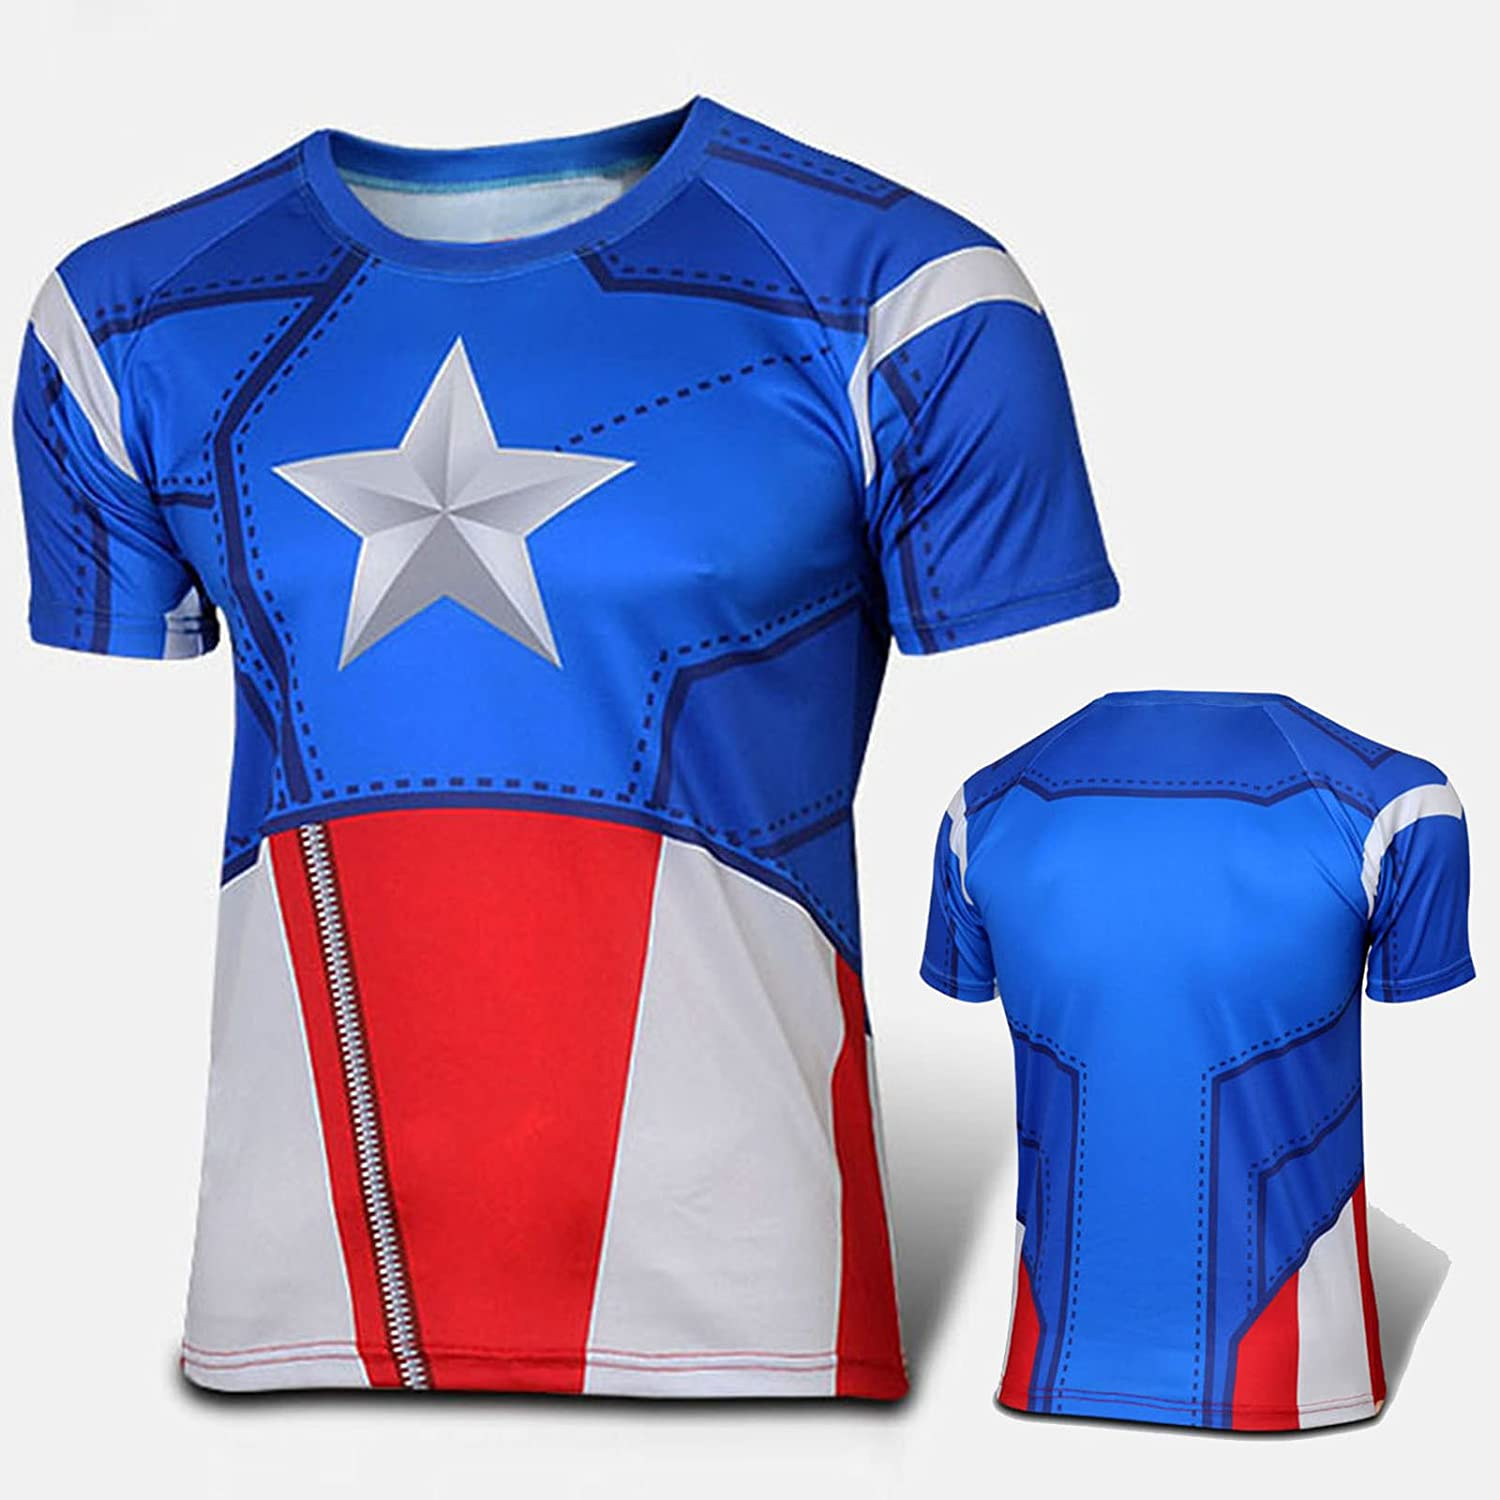 FidgetFidget T-shirt Mens Compression T-shirt Cosplay Costume Casual Sports  Base Layer Blouse   Tops  30 Captain America B XL (Summer Lightweight  Athlete ... 6d6c6989c